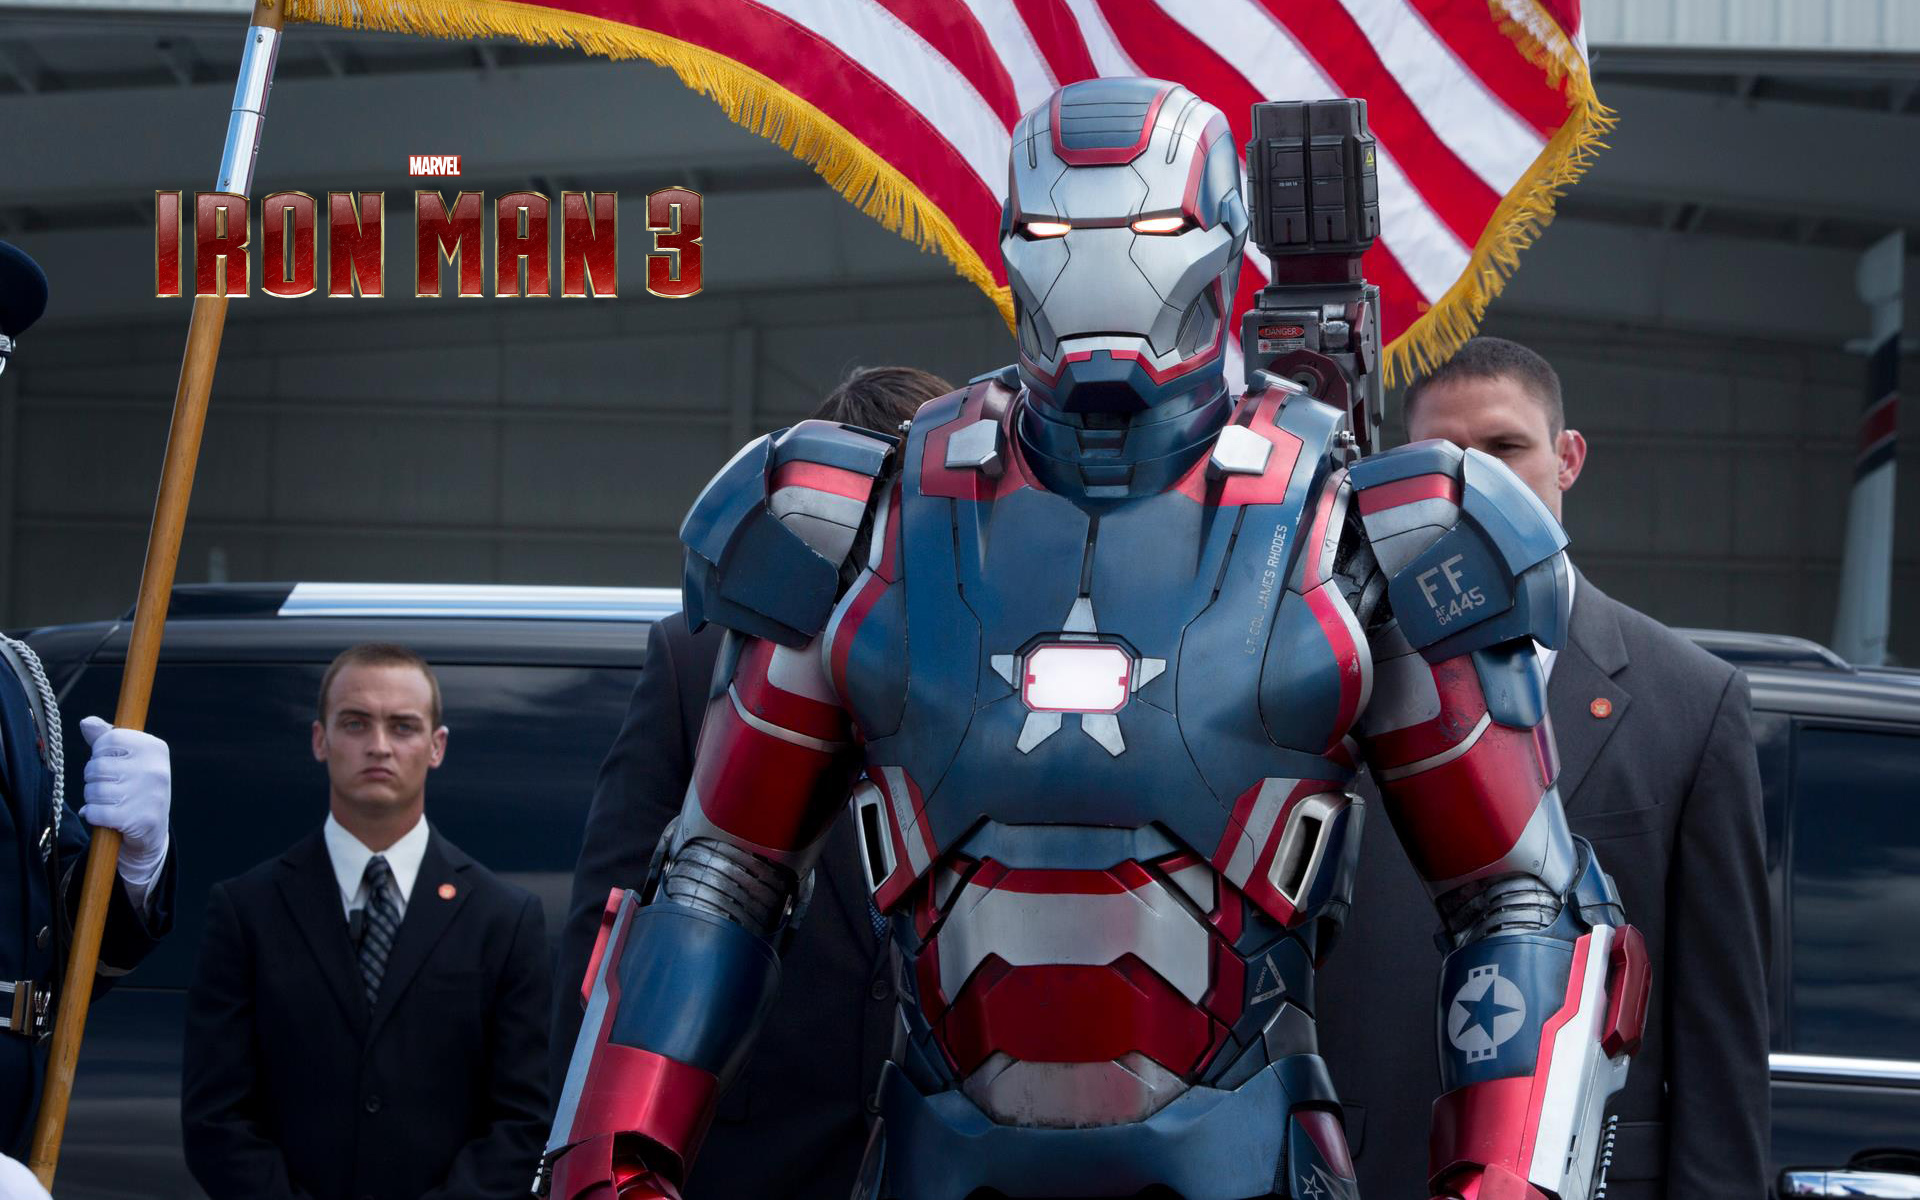 iron patriot in marvel iron man 3 movie